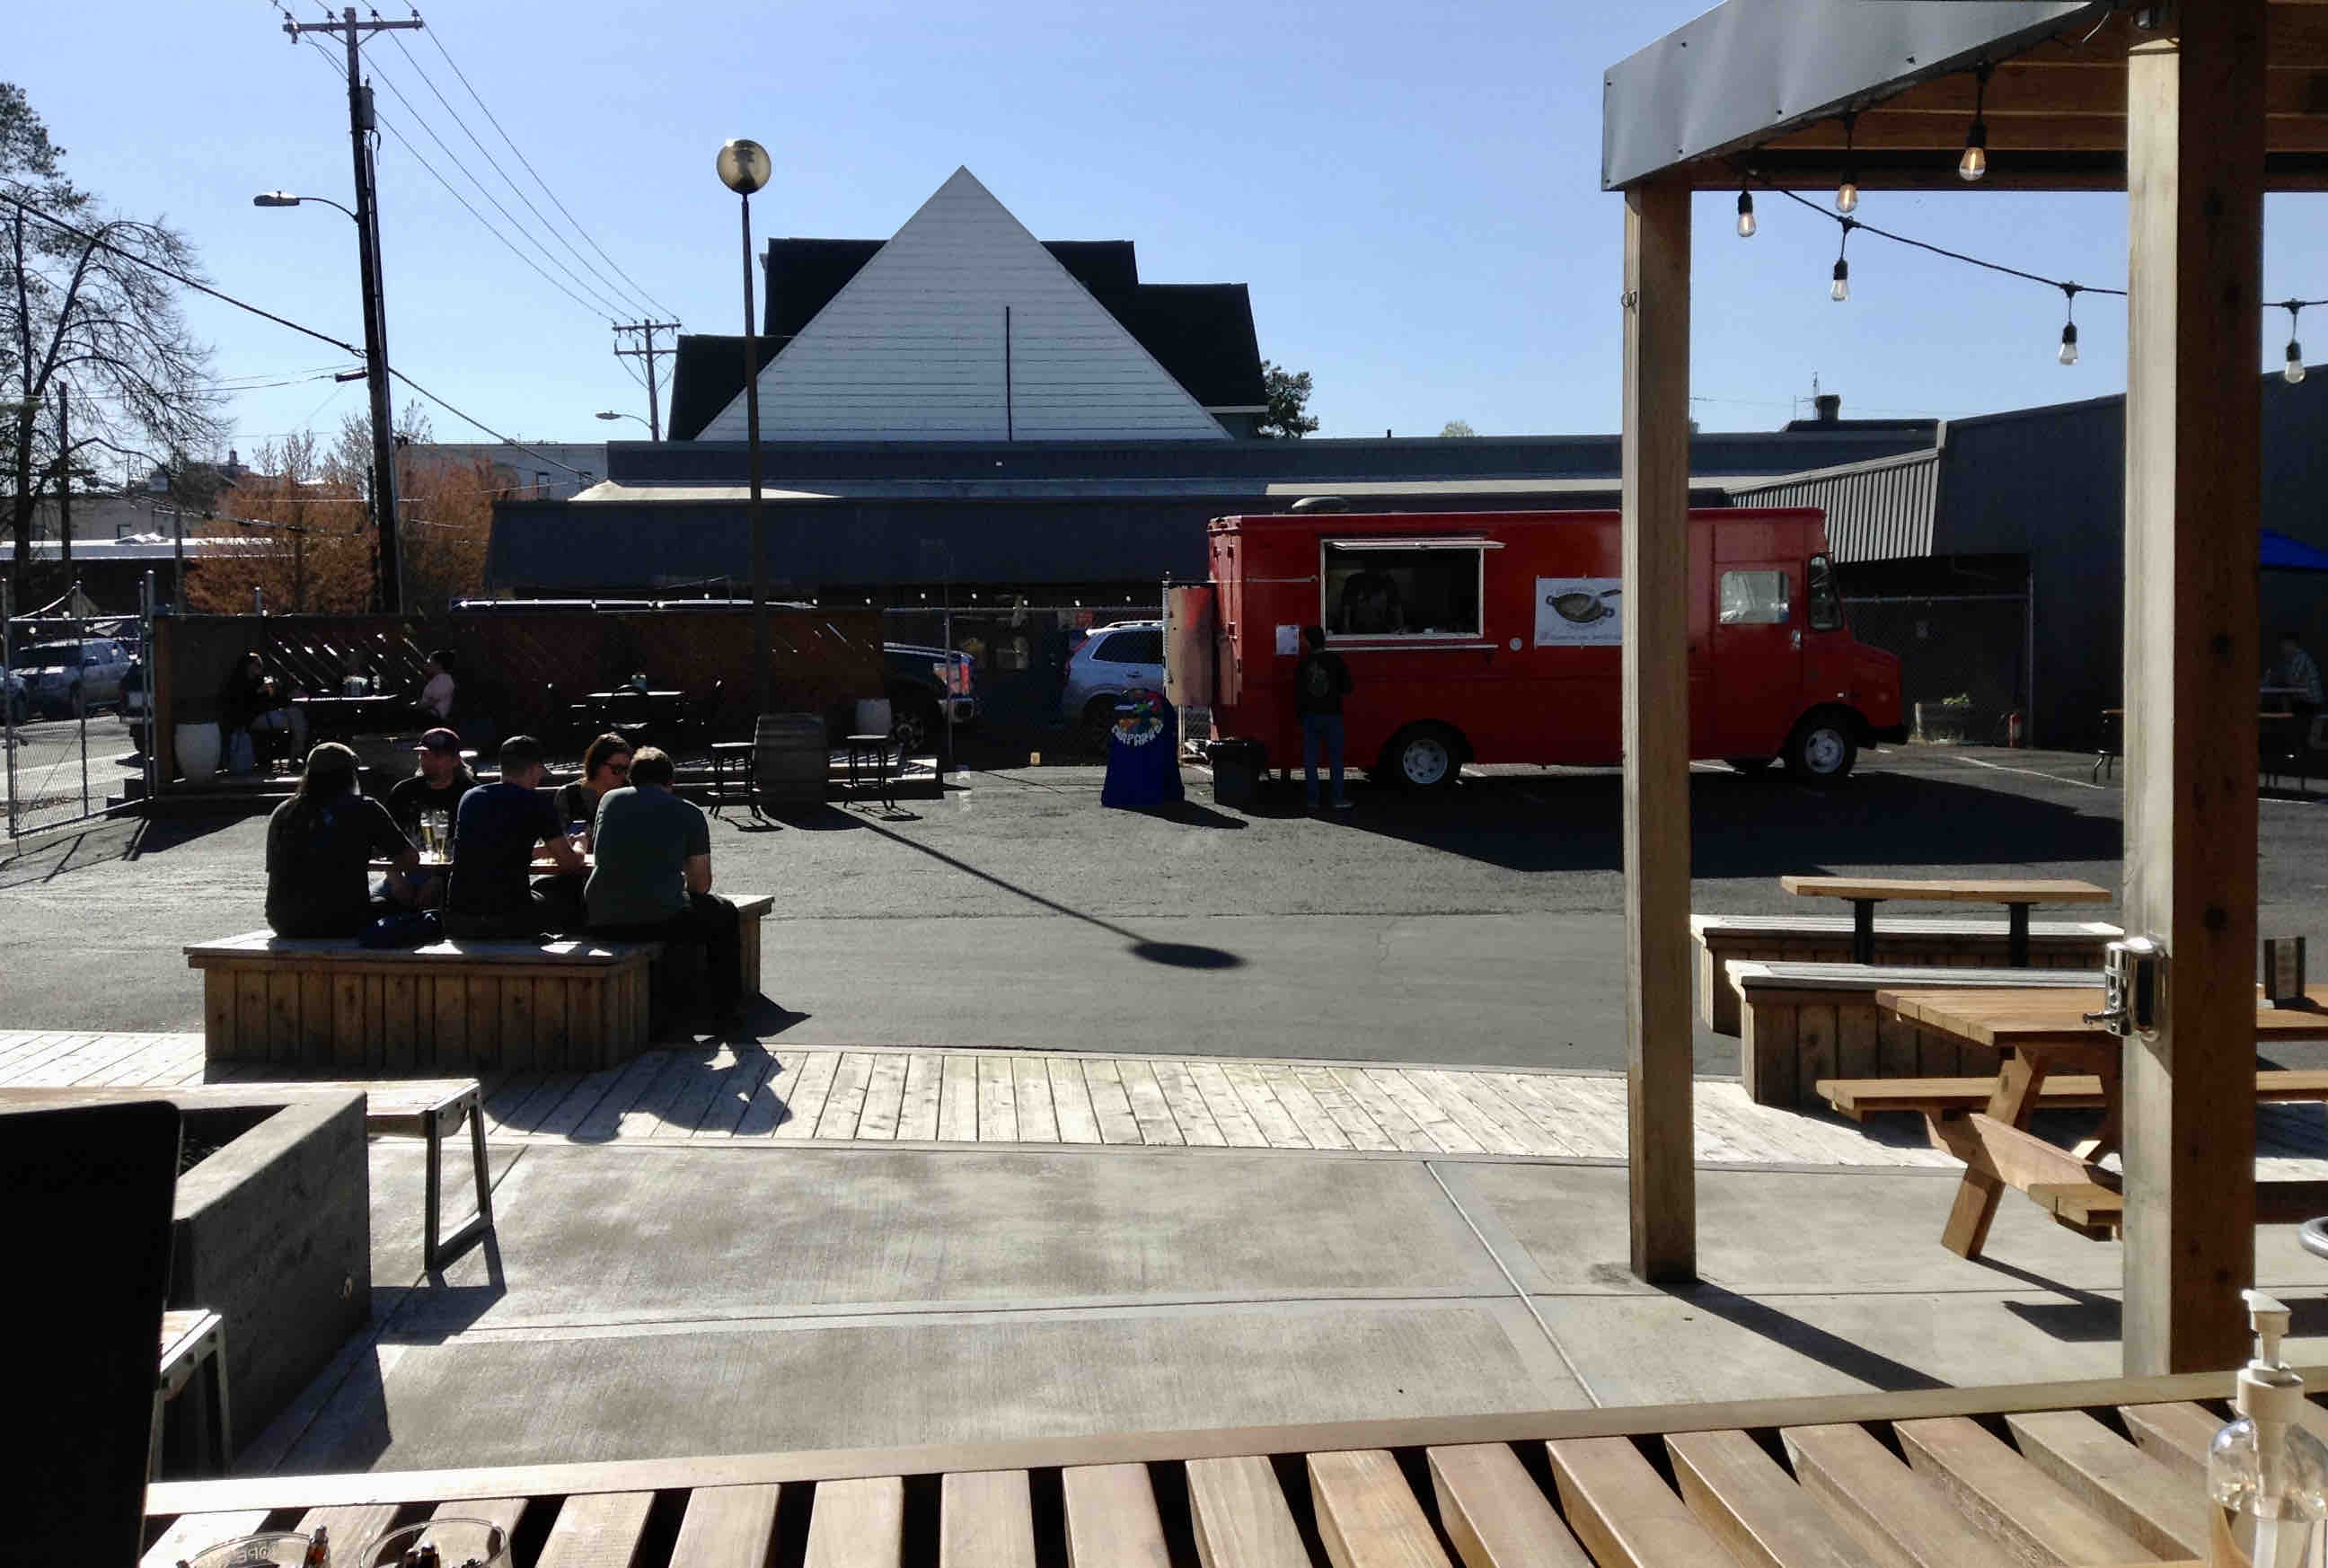 A view of the outdoor patio with a food truck at ForeLand Beer. (photo by Jessica Wilmes)